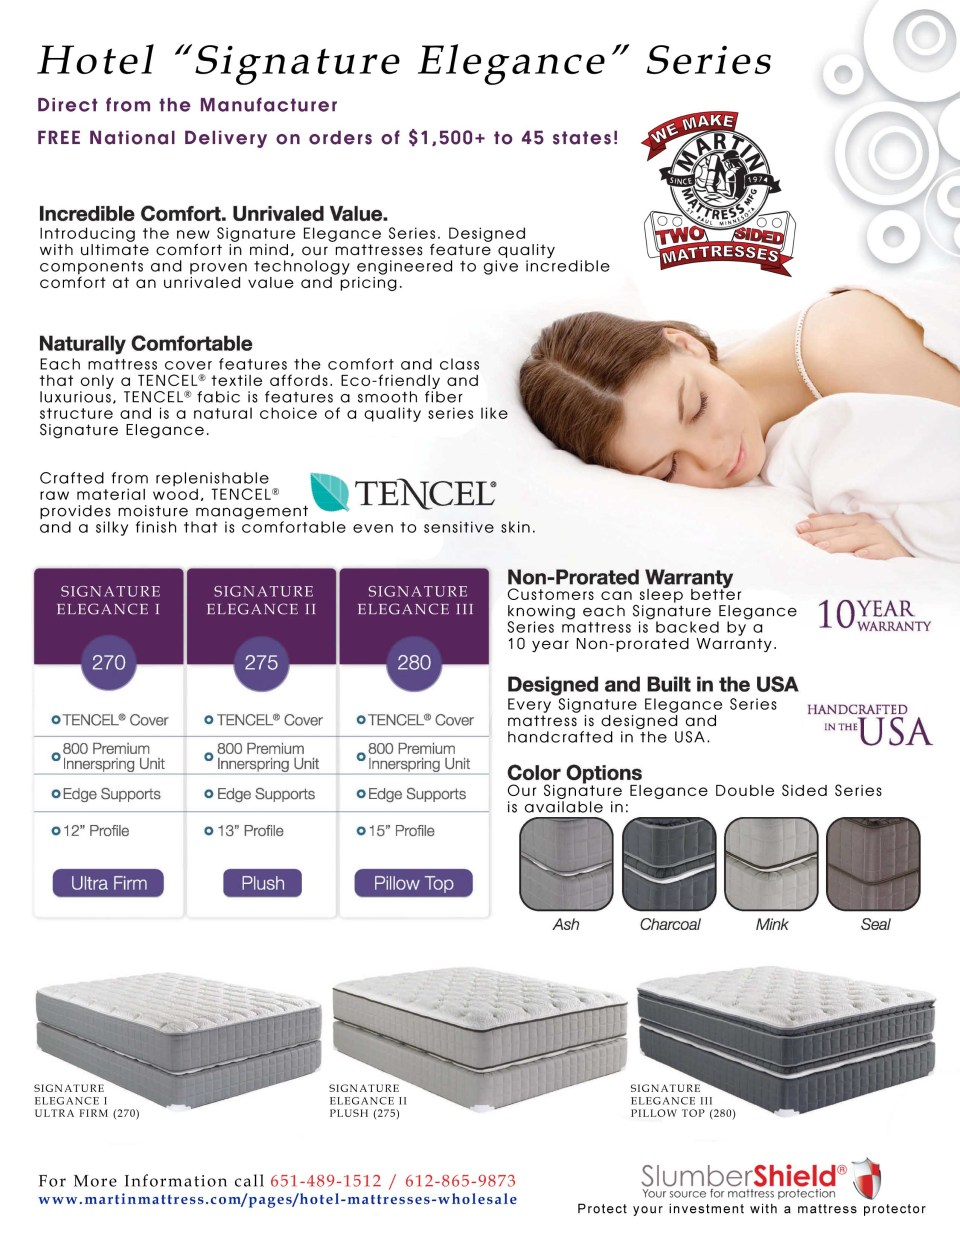 Hotel Mattress | Hotel Mattress Wholesale | Free National Delivery